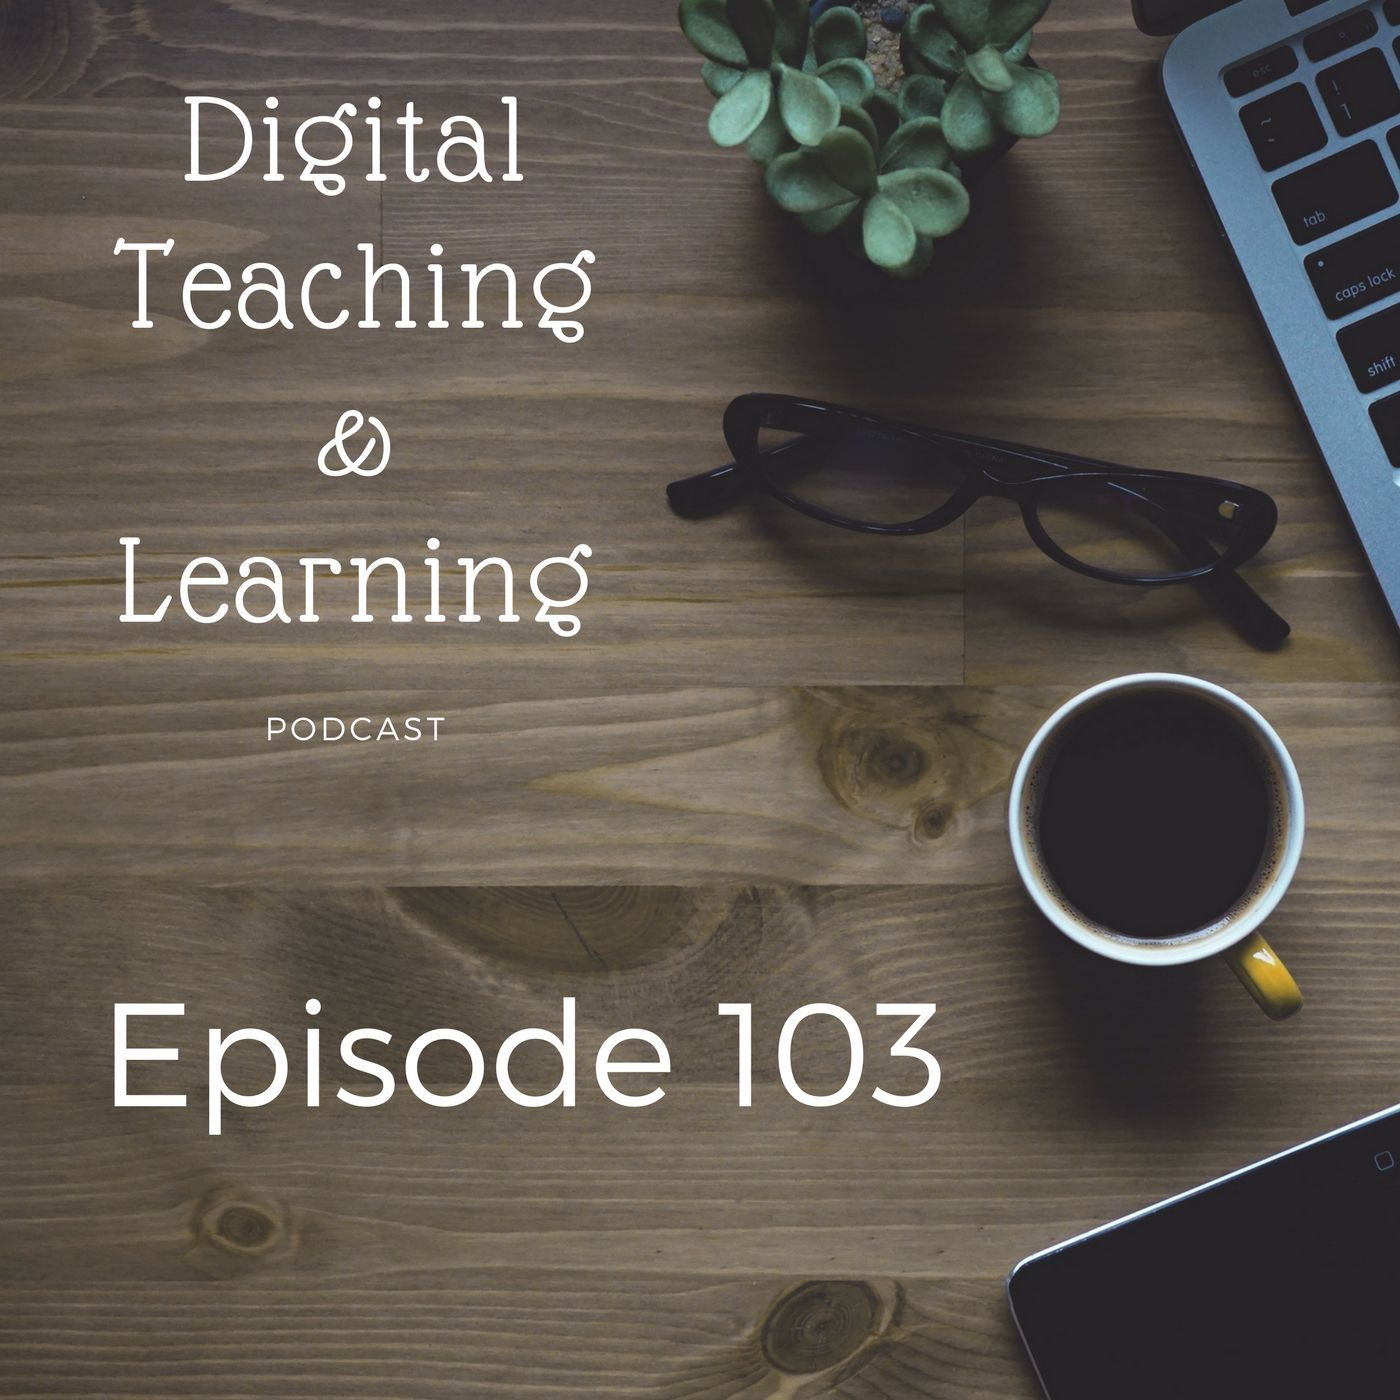 Episode 103 - When is digital the right choice?